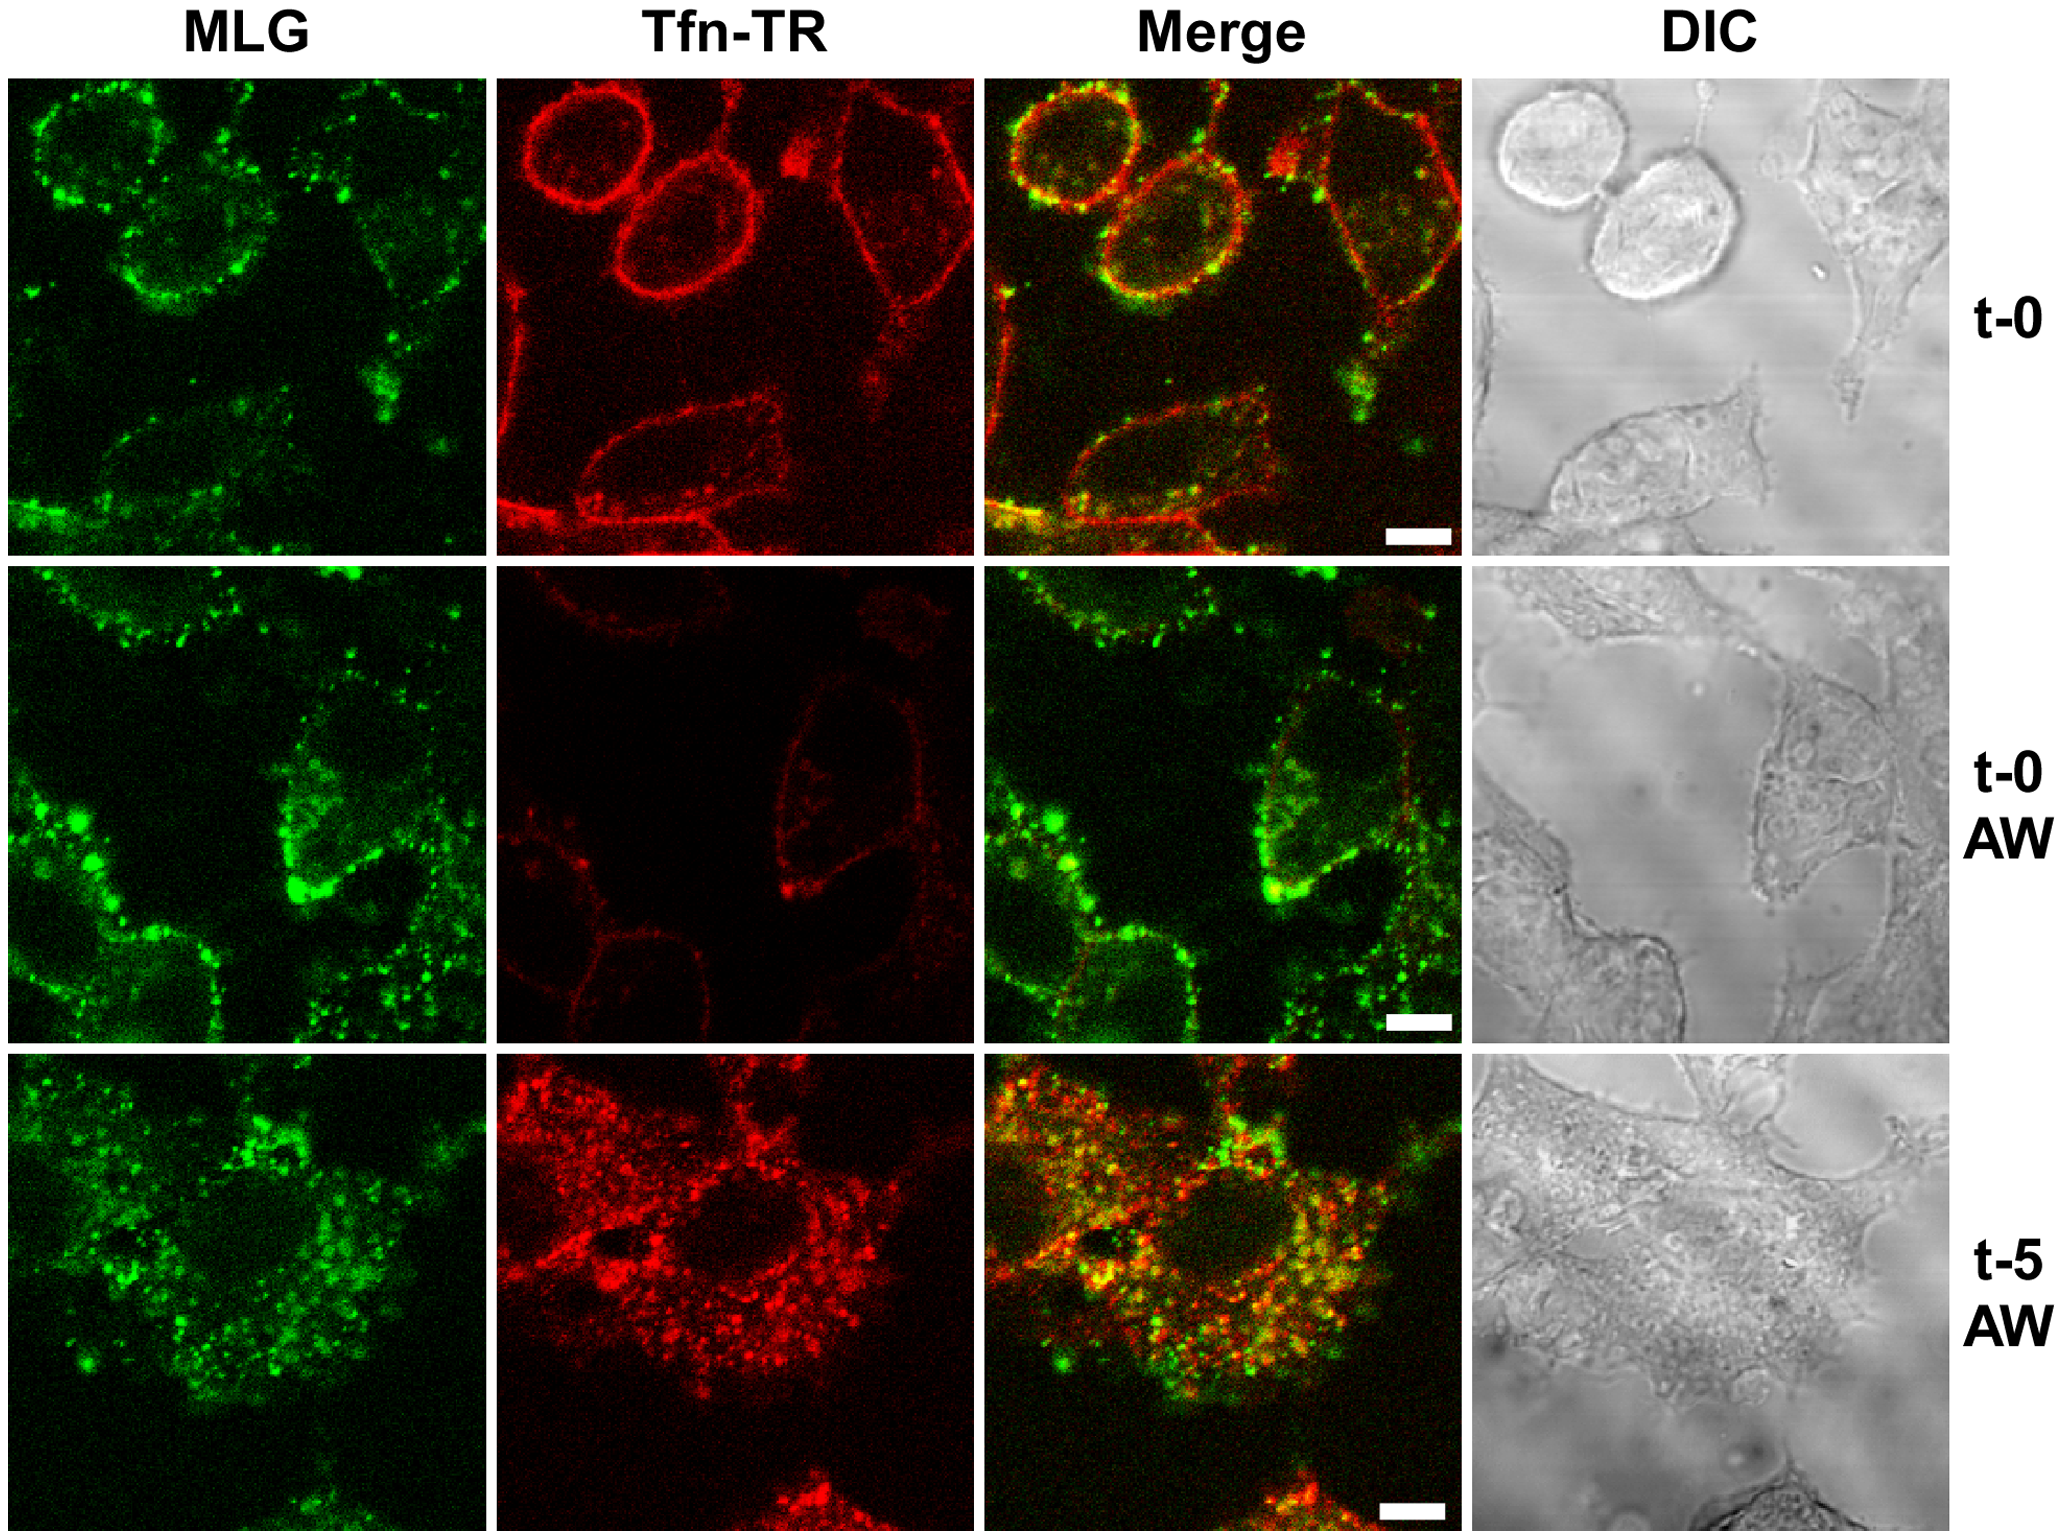 Endocytosis of surface bound Tfn-TR and rVSV-MLG.